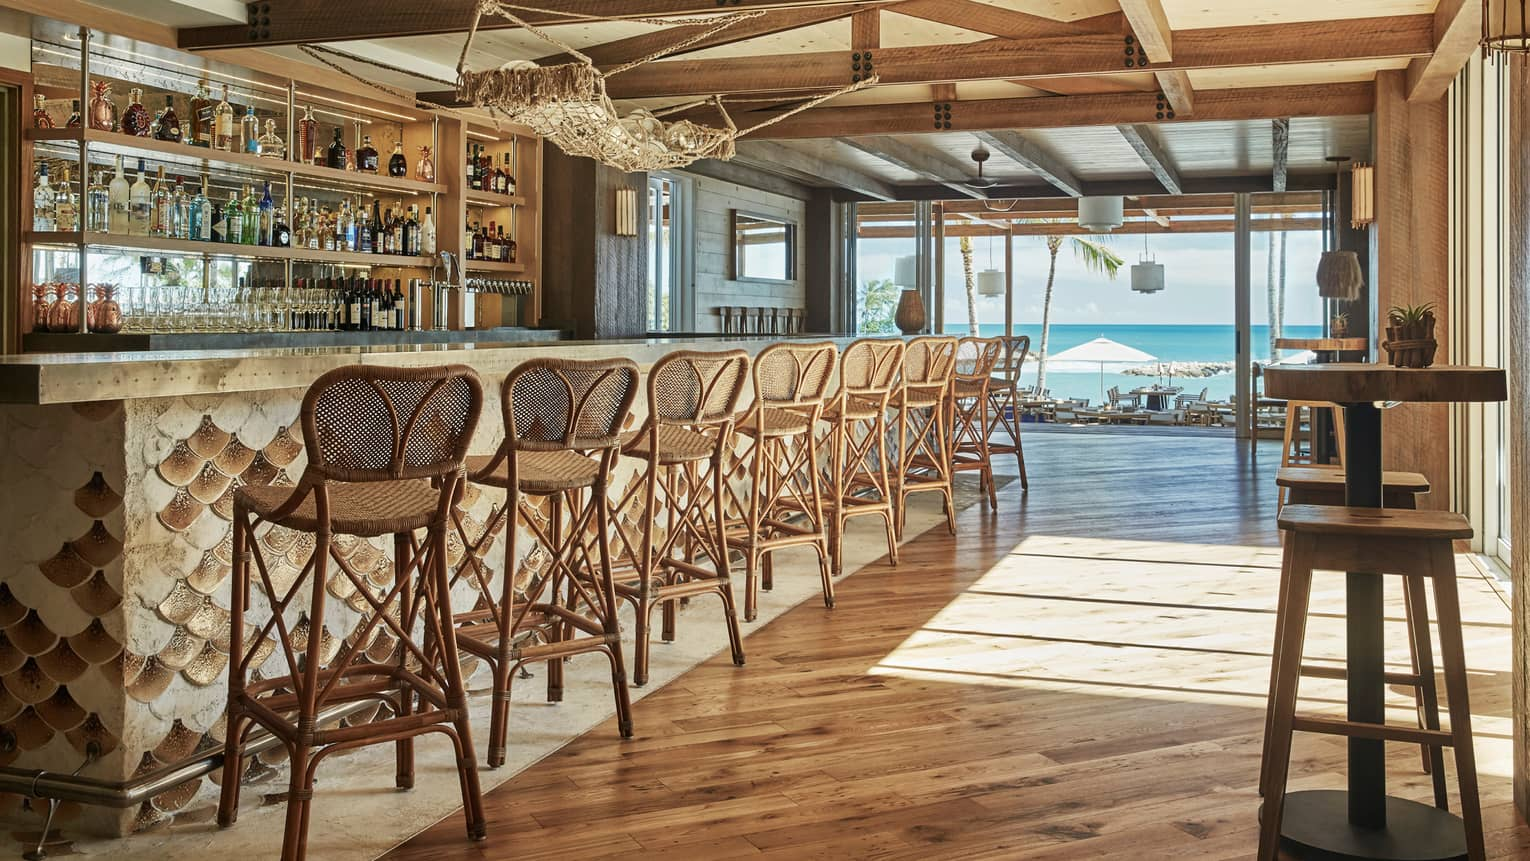 Wicker stools line Minas bar with wood fish-scale design, under fish net hammock with glass balls